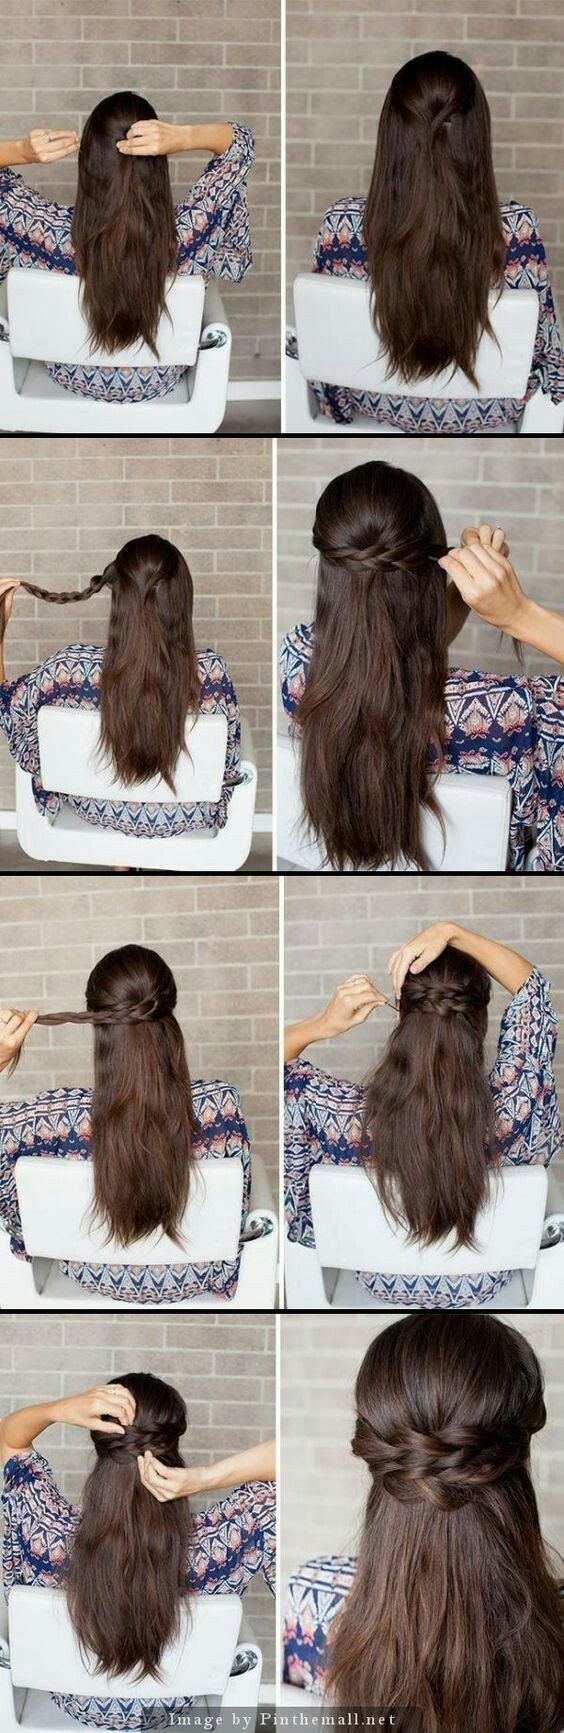 Find easy hairstyles for schools tutorials bday pinterest